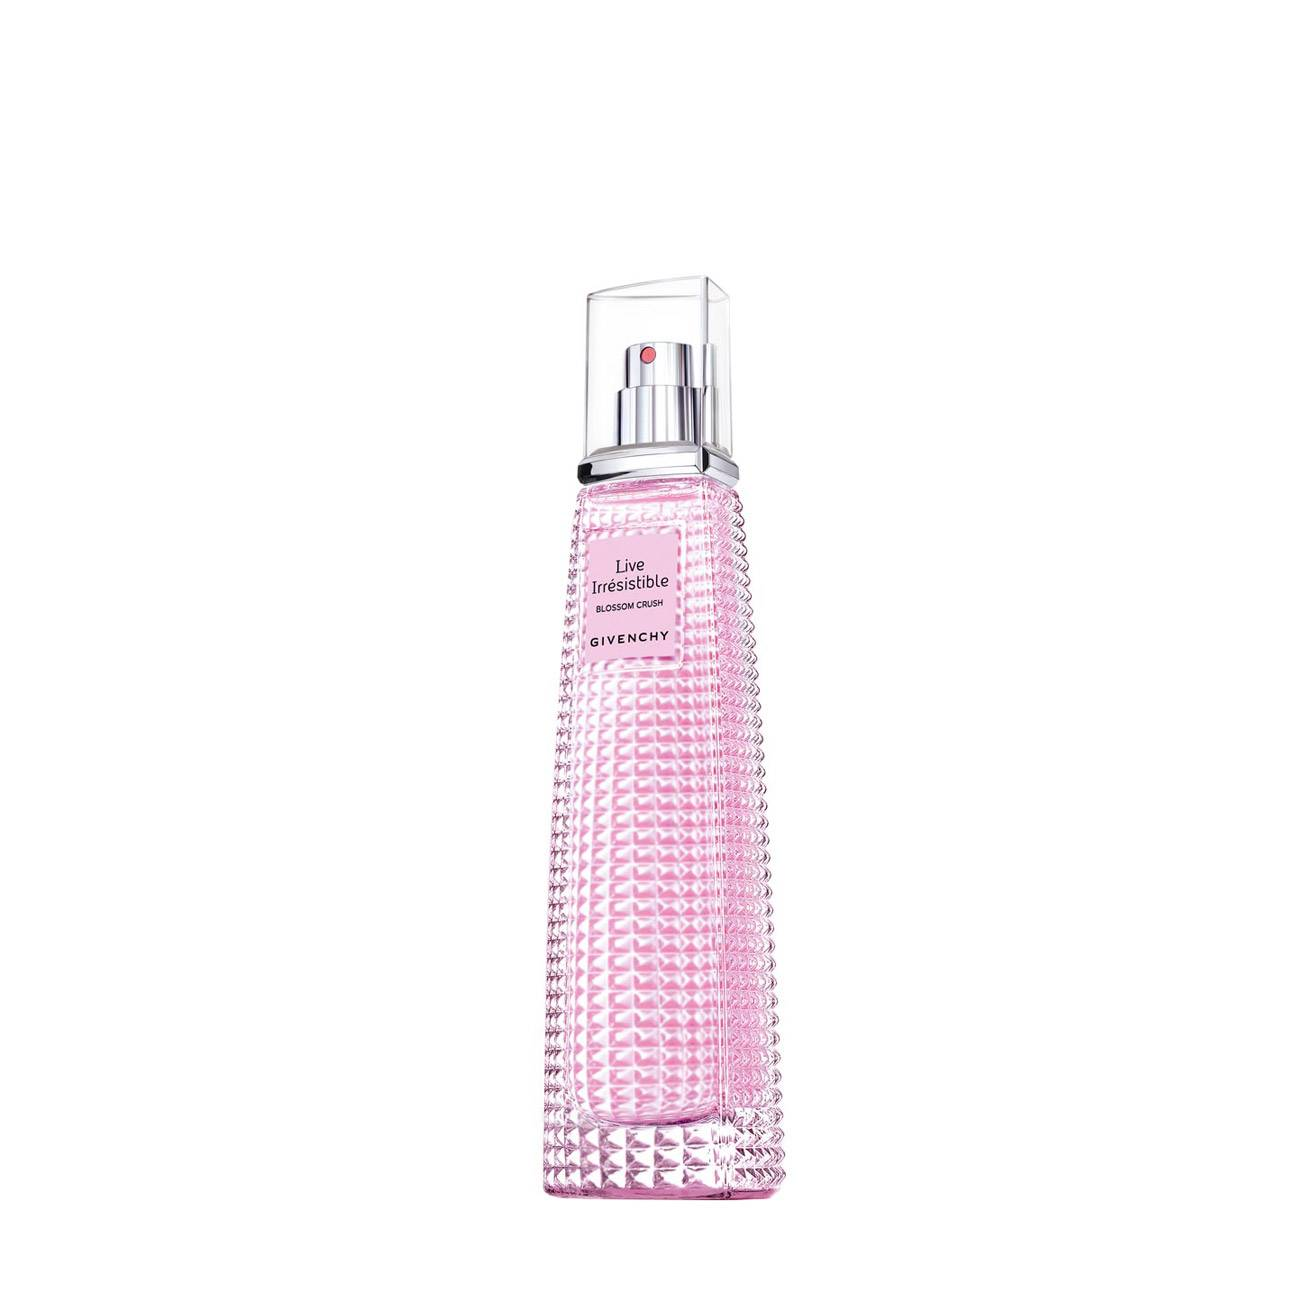 LIVE IRRESISTIBLE BLOSSOM CRUSH 75ml